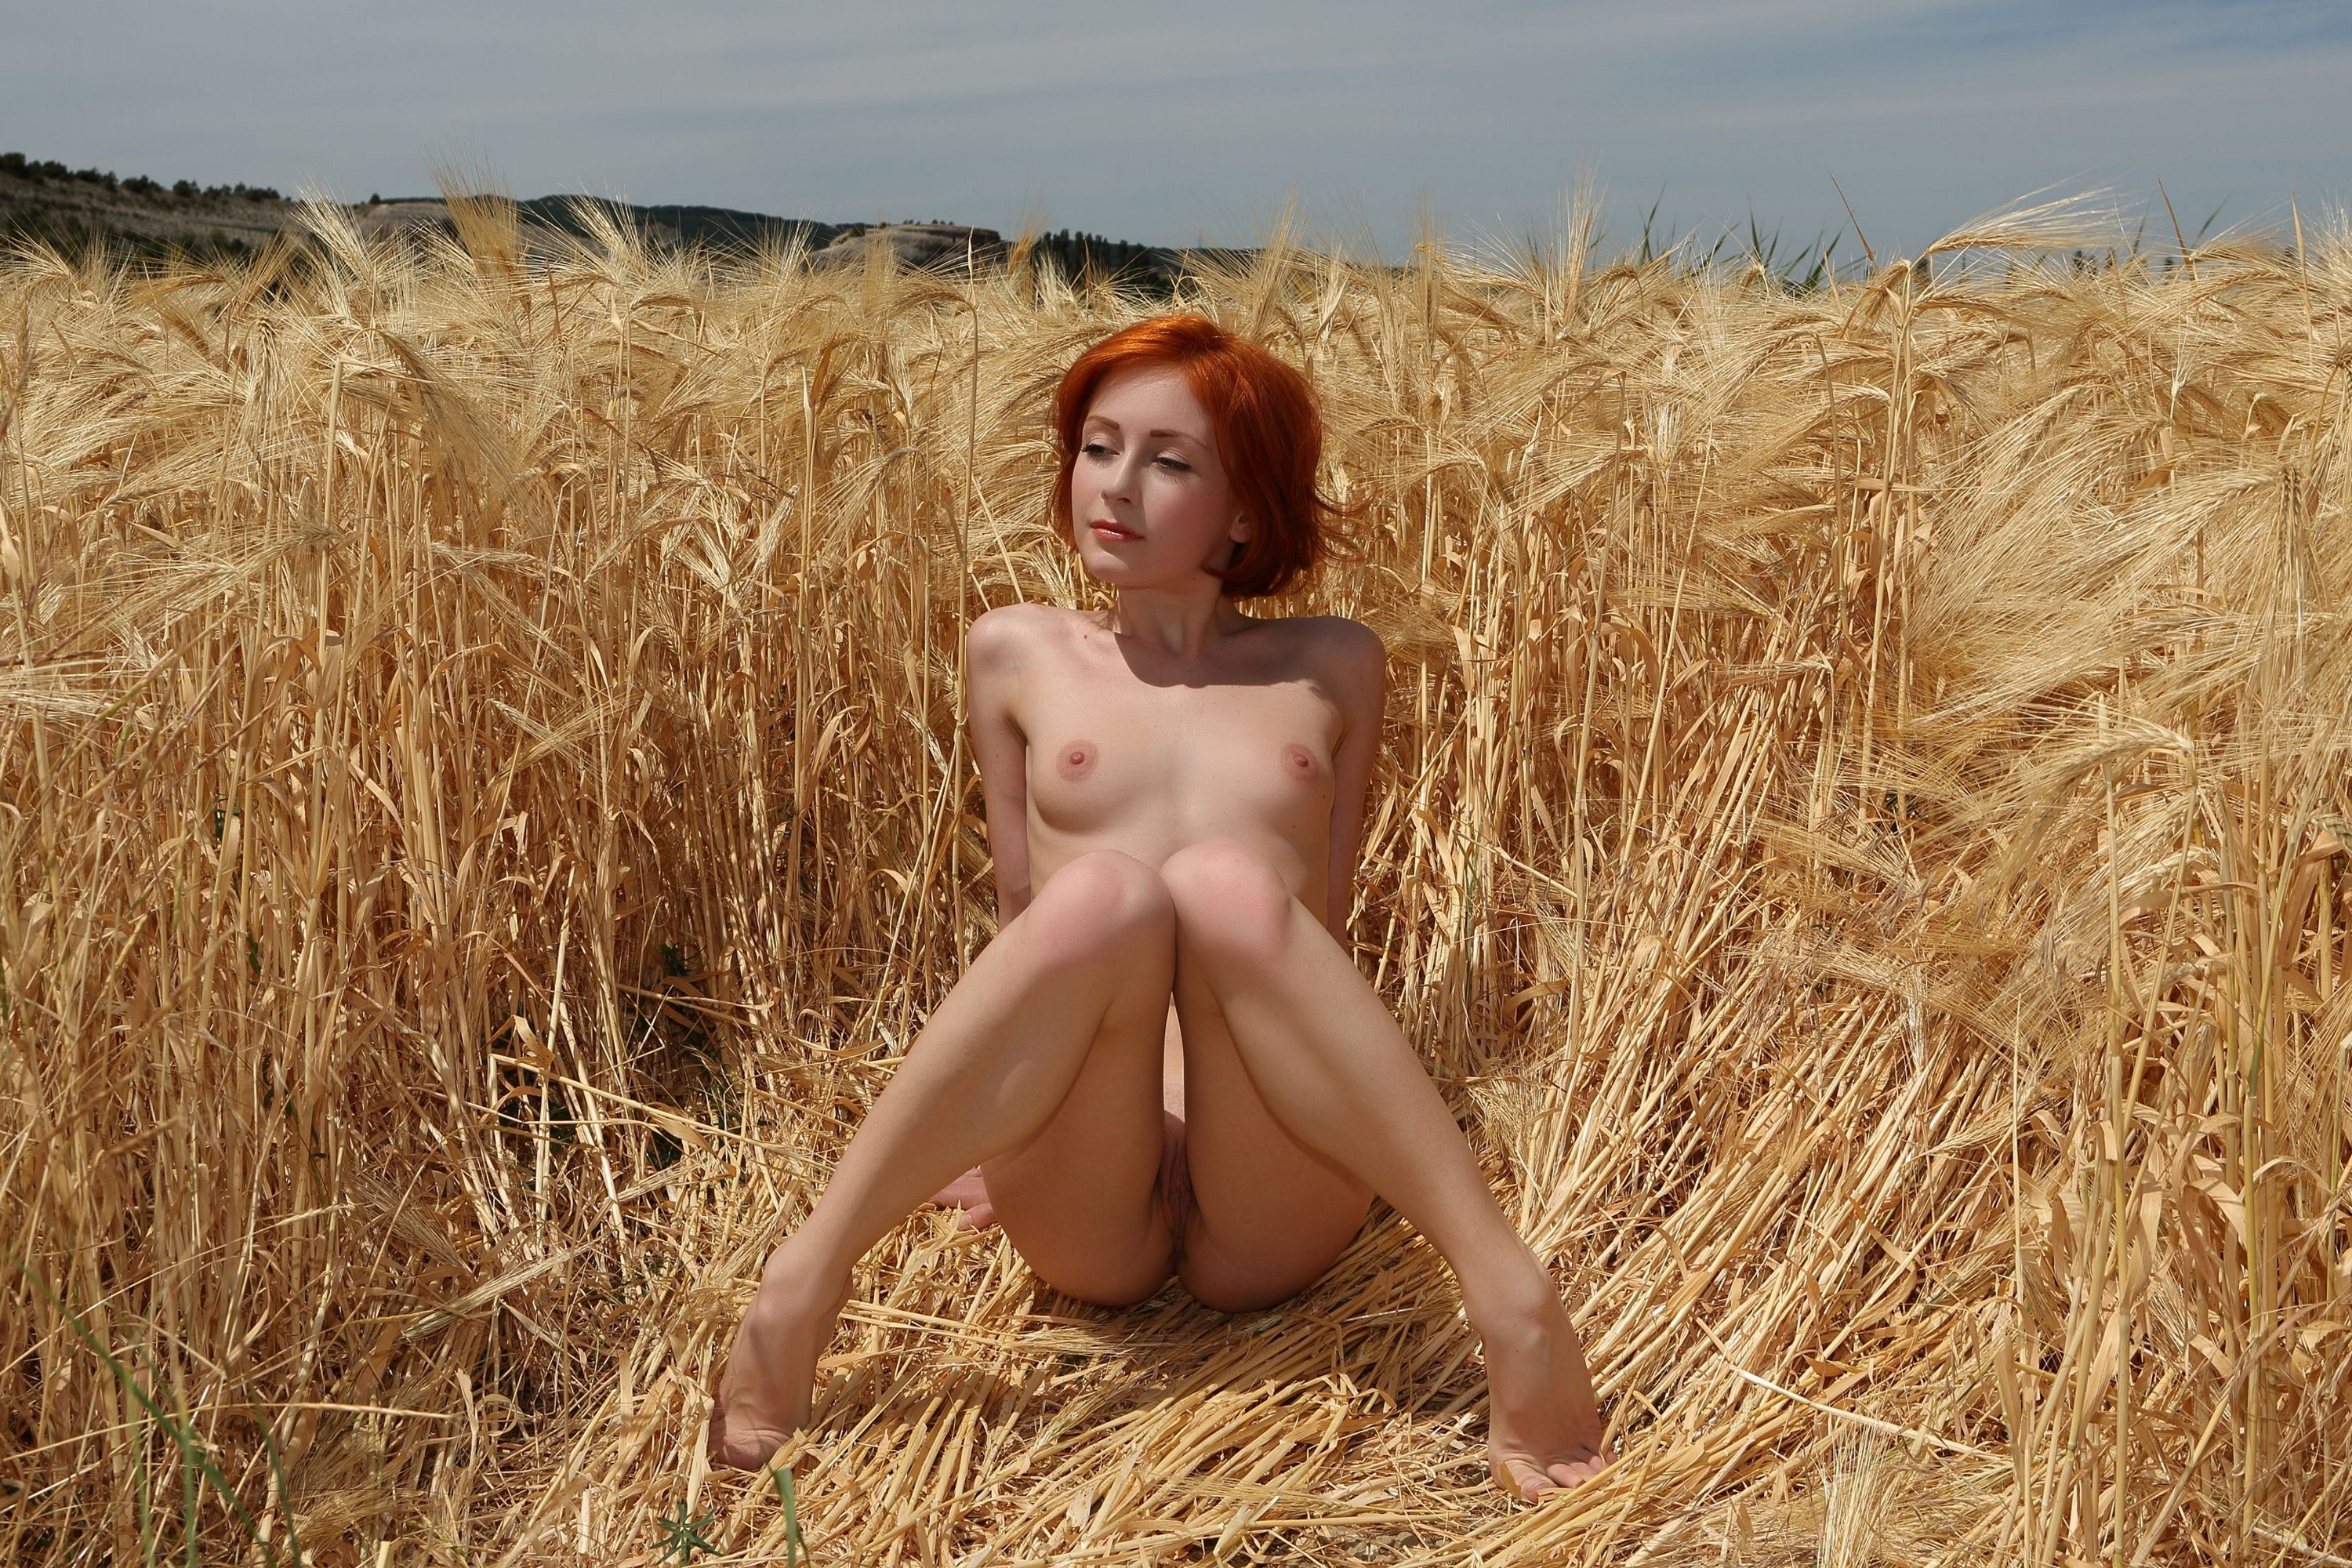 Think, shorthair ginger naked girl quickly